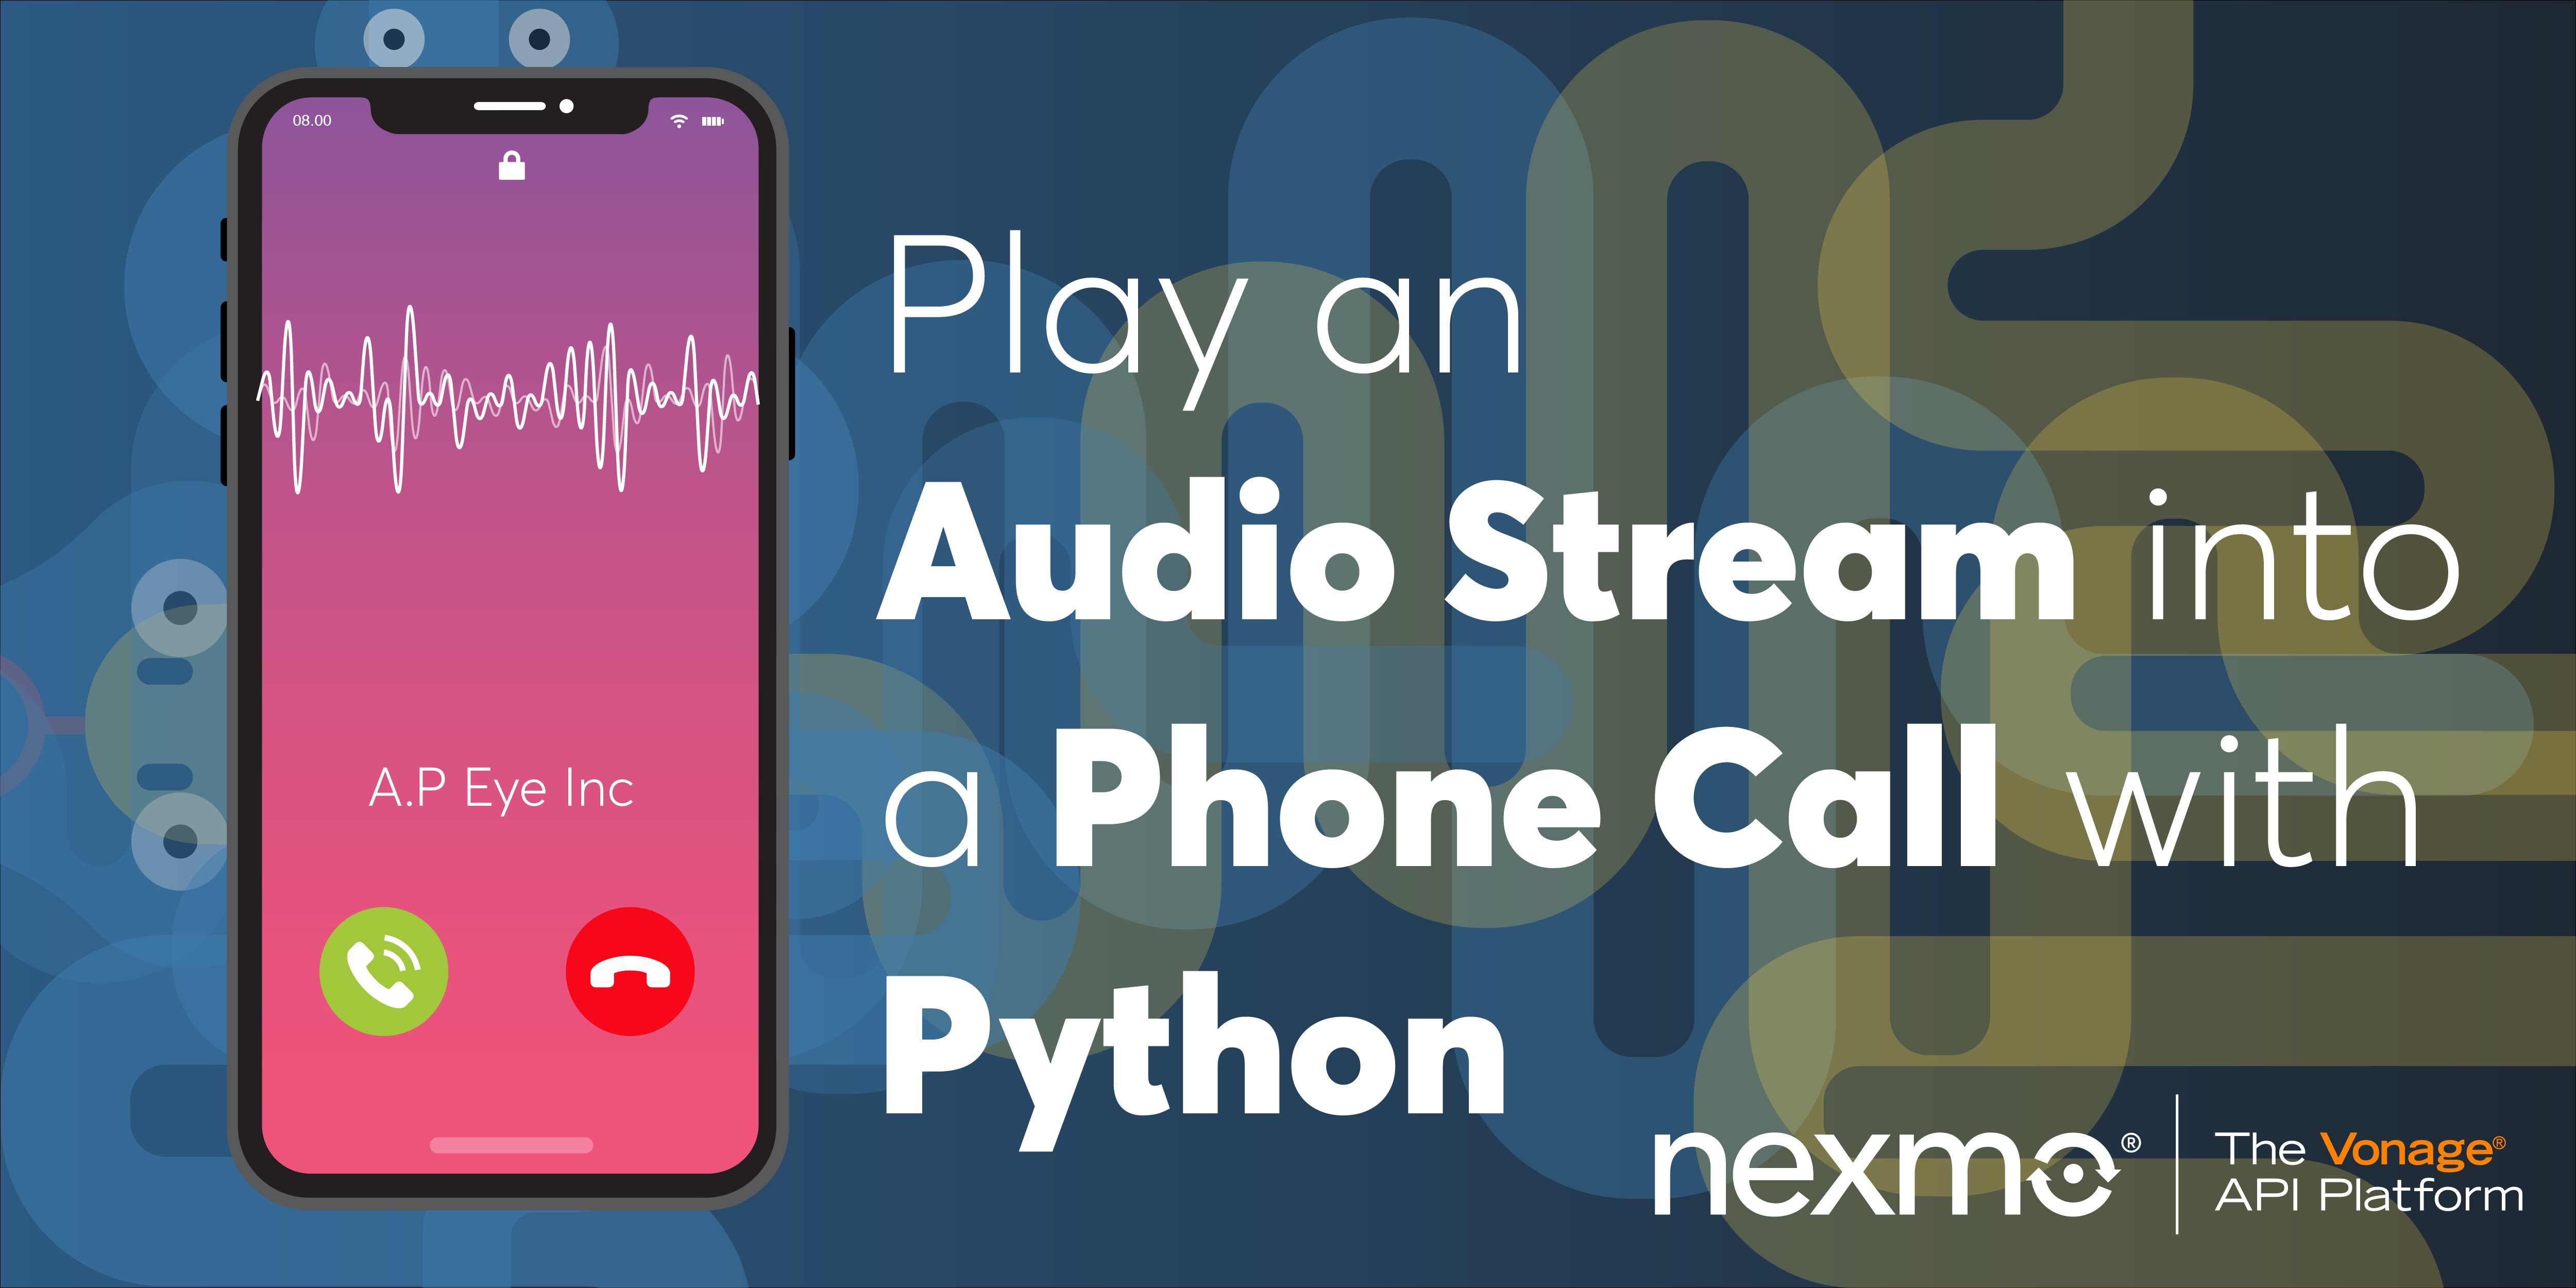 How to Play an Audio Stream into a Phone Call with Python